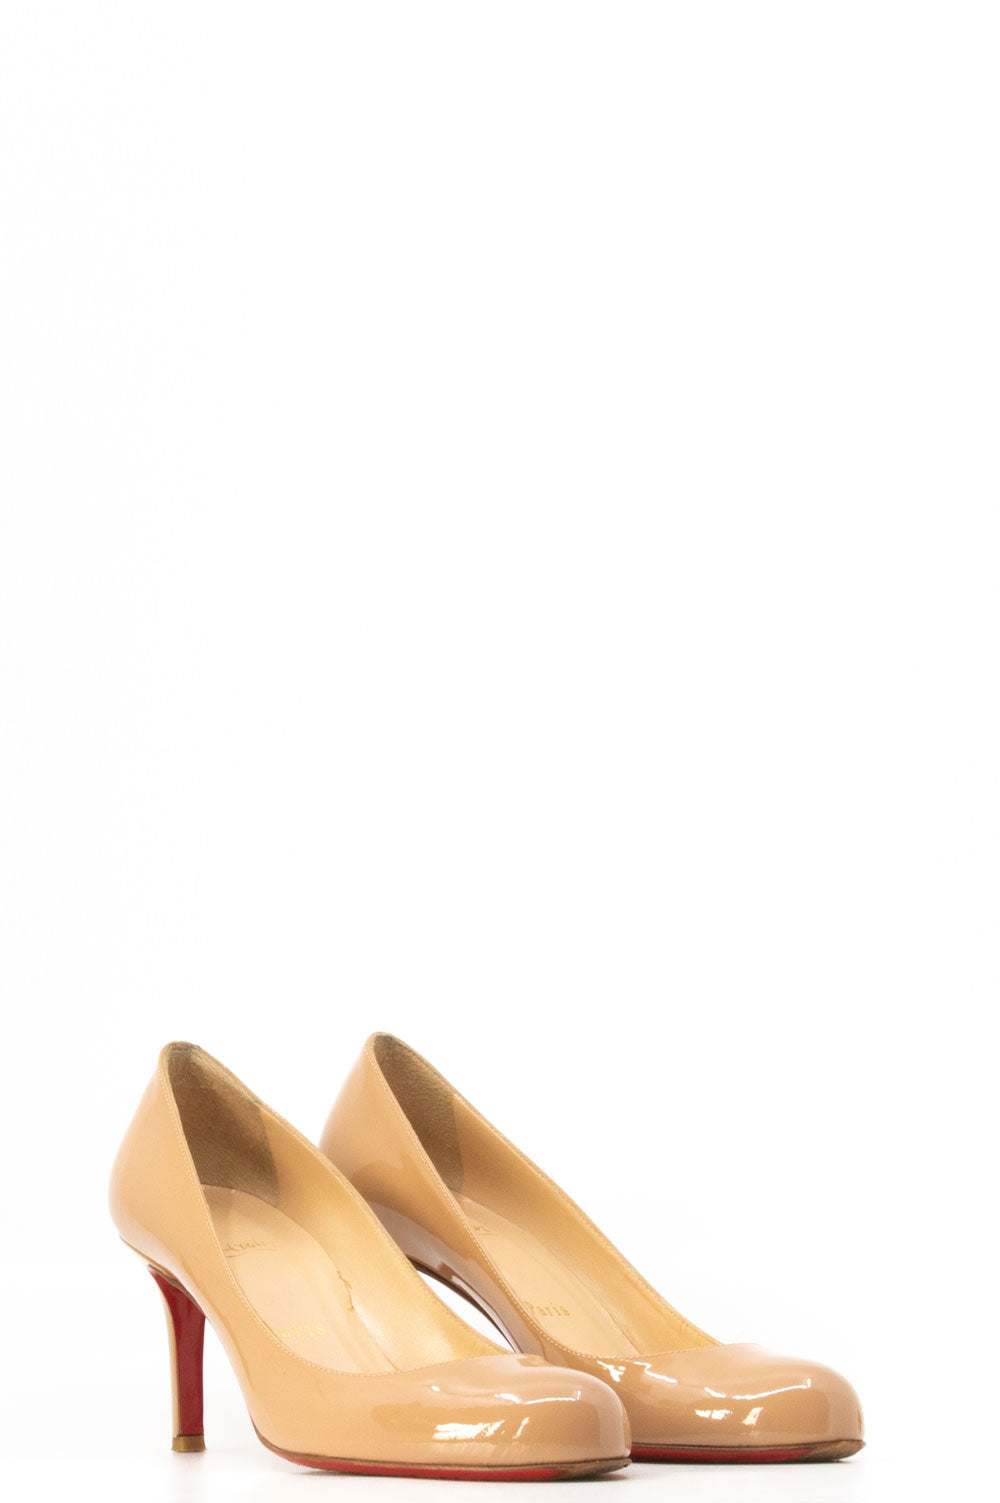 CHRISTIAN LOUBOUTIN Simple Pumps